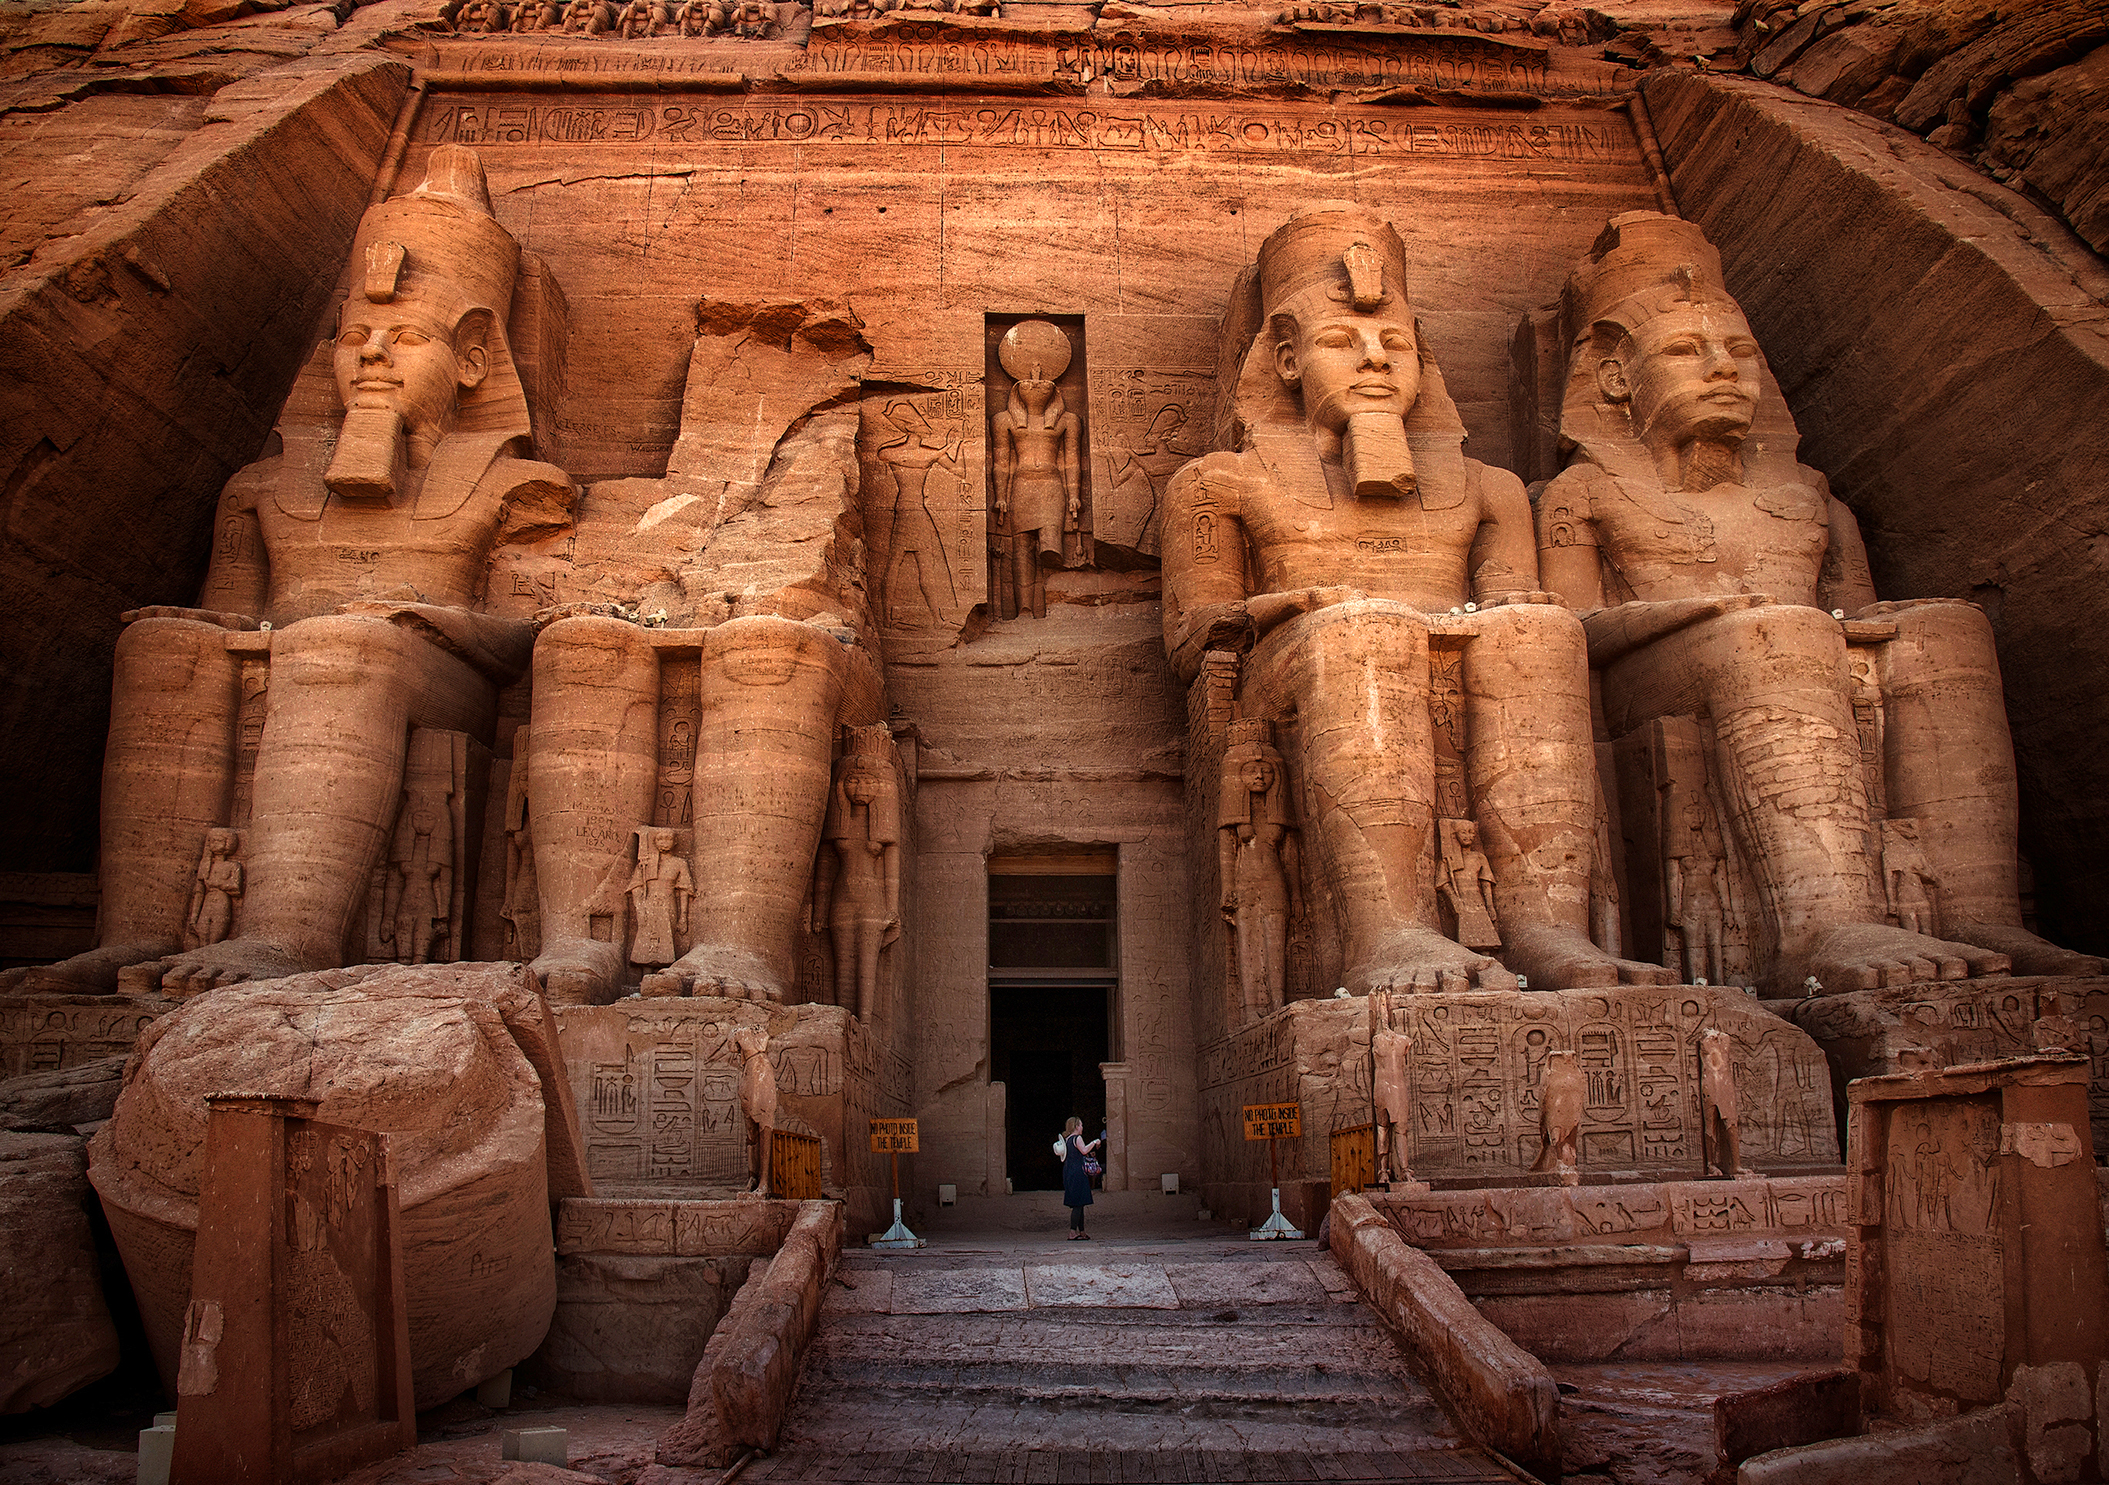 Entrance to the main temple at Abu Simbel